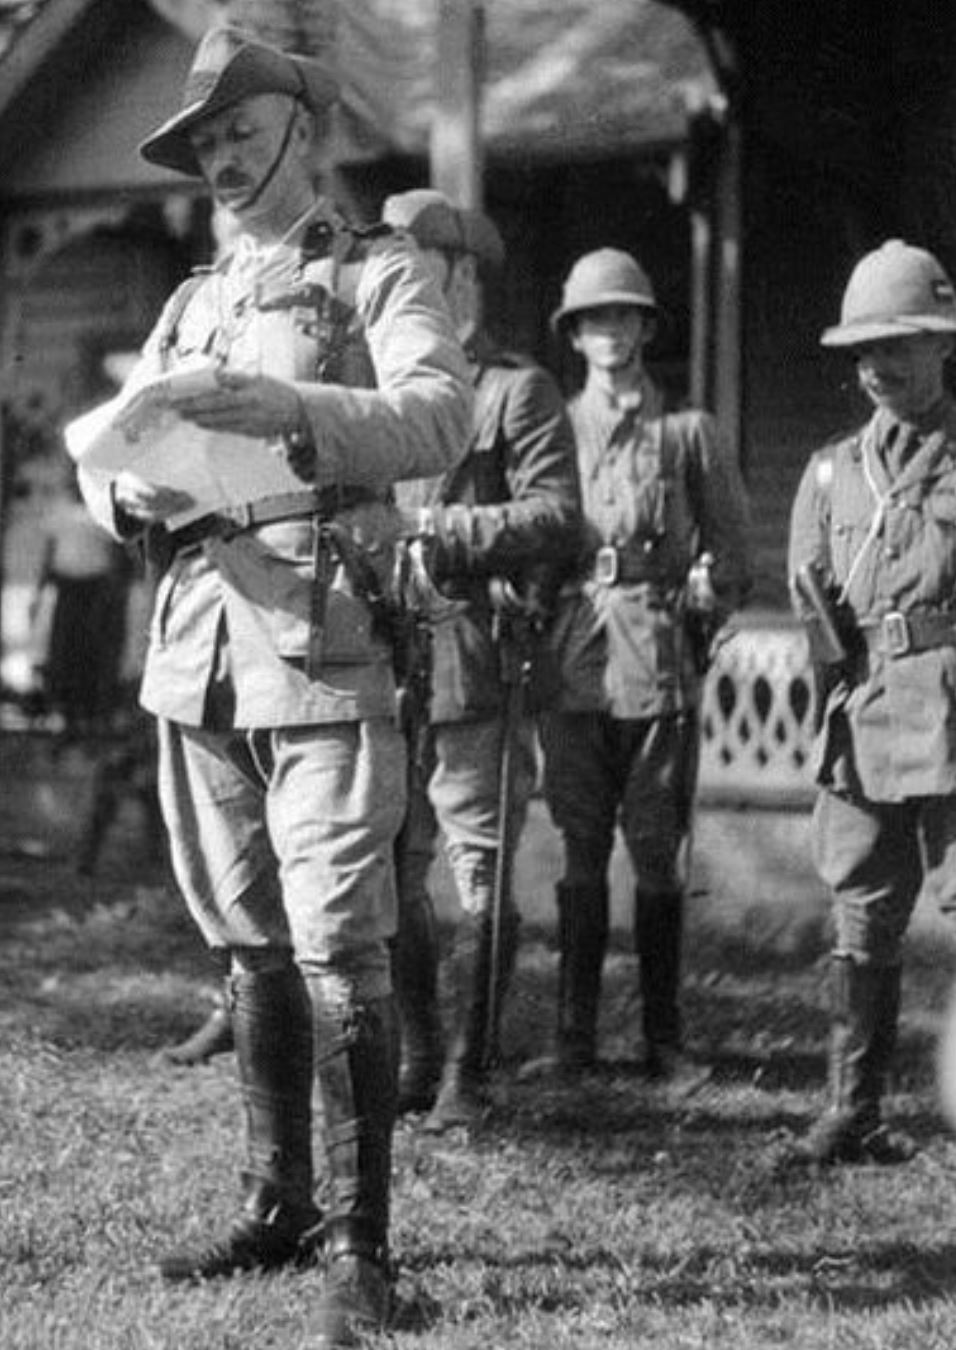 Robert-Logan-reading-proclamation-of-occupation-in-Samoa-August-30-1914